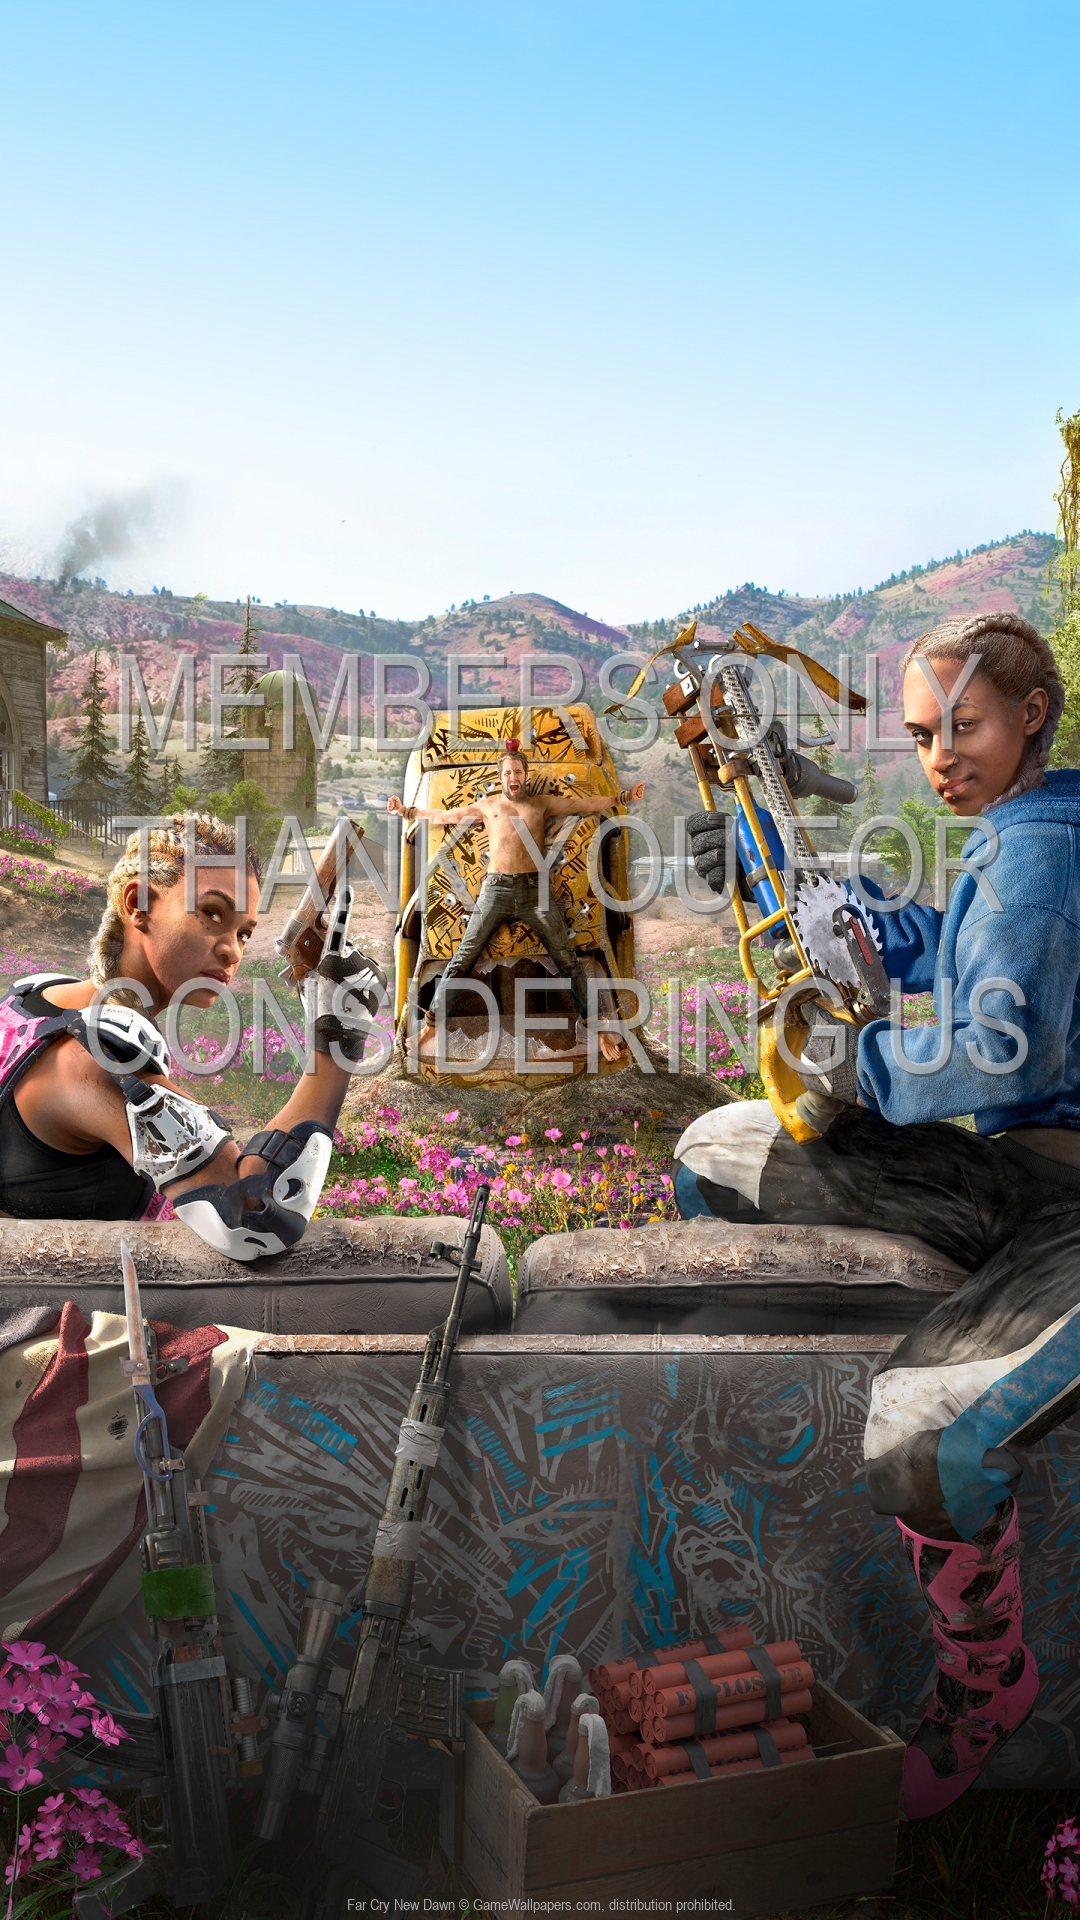 Far Cry New Dawn 1920x1080 Mobile wallpaper or background 02